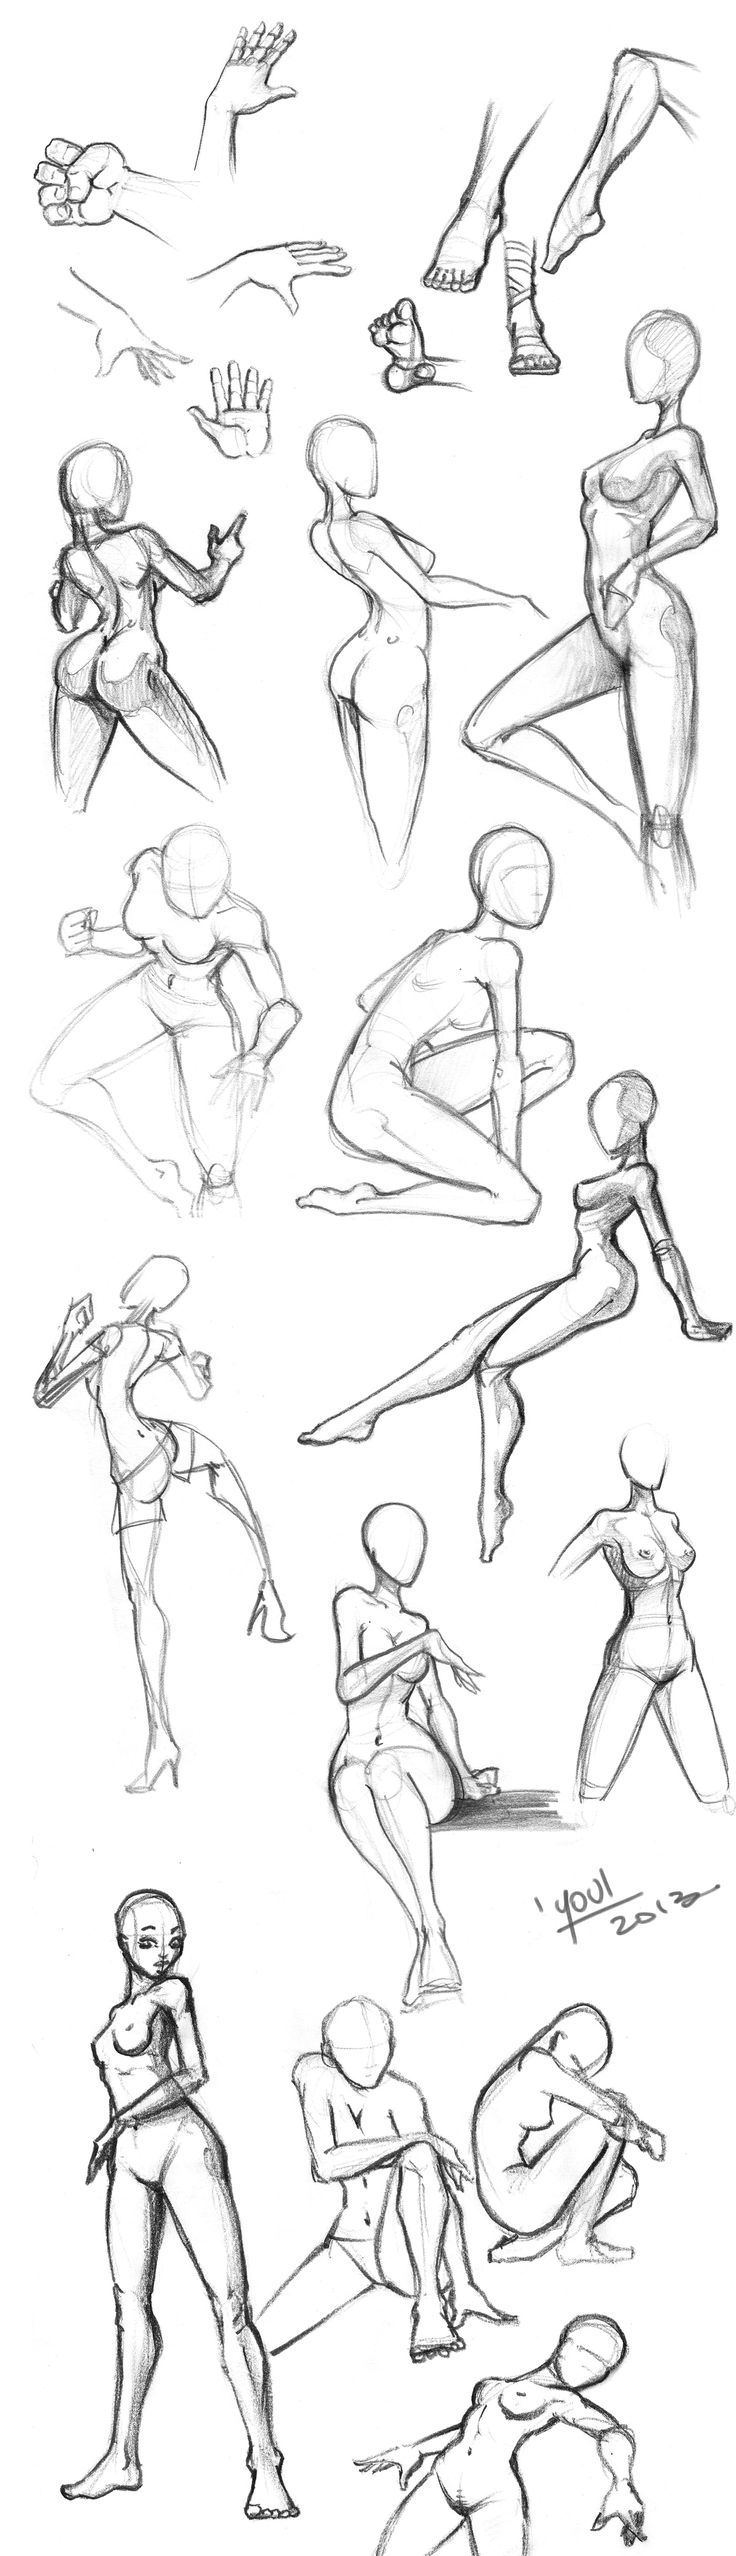 Youl Sketches Juin2013 Poses by YoulDesign